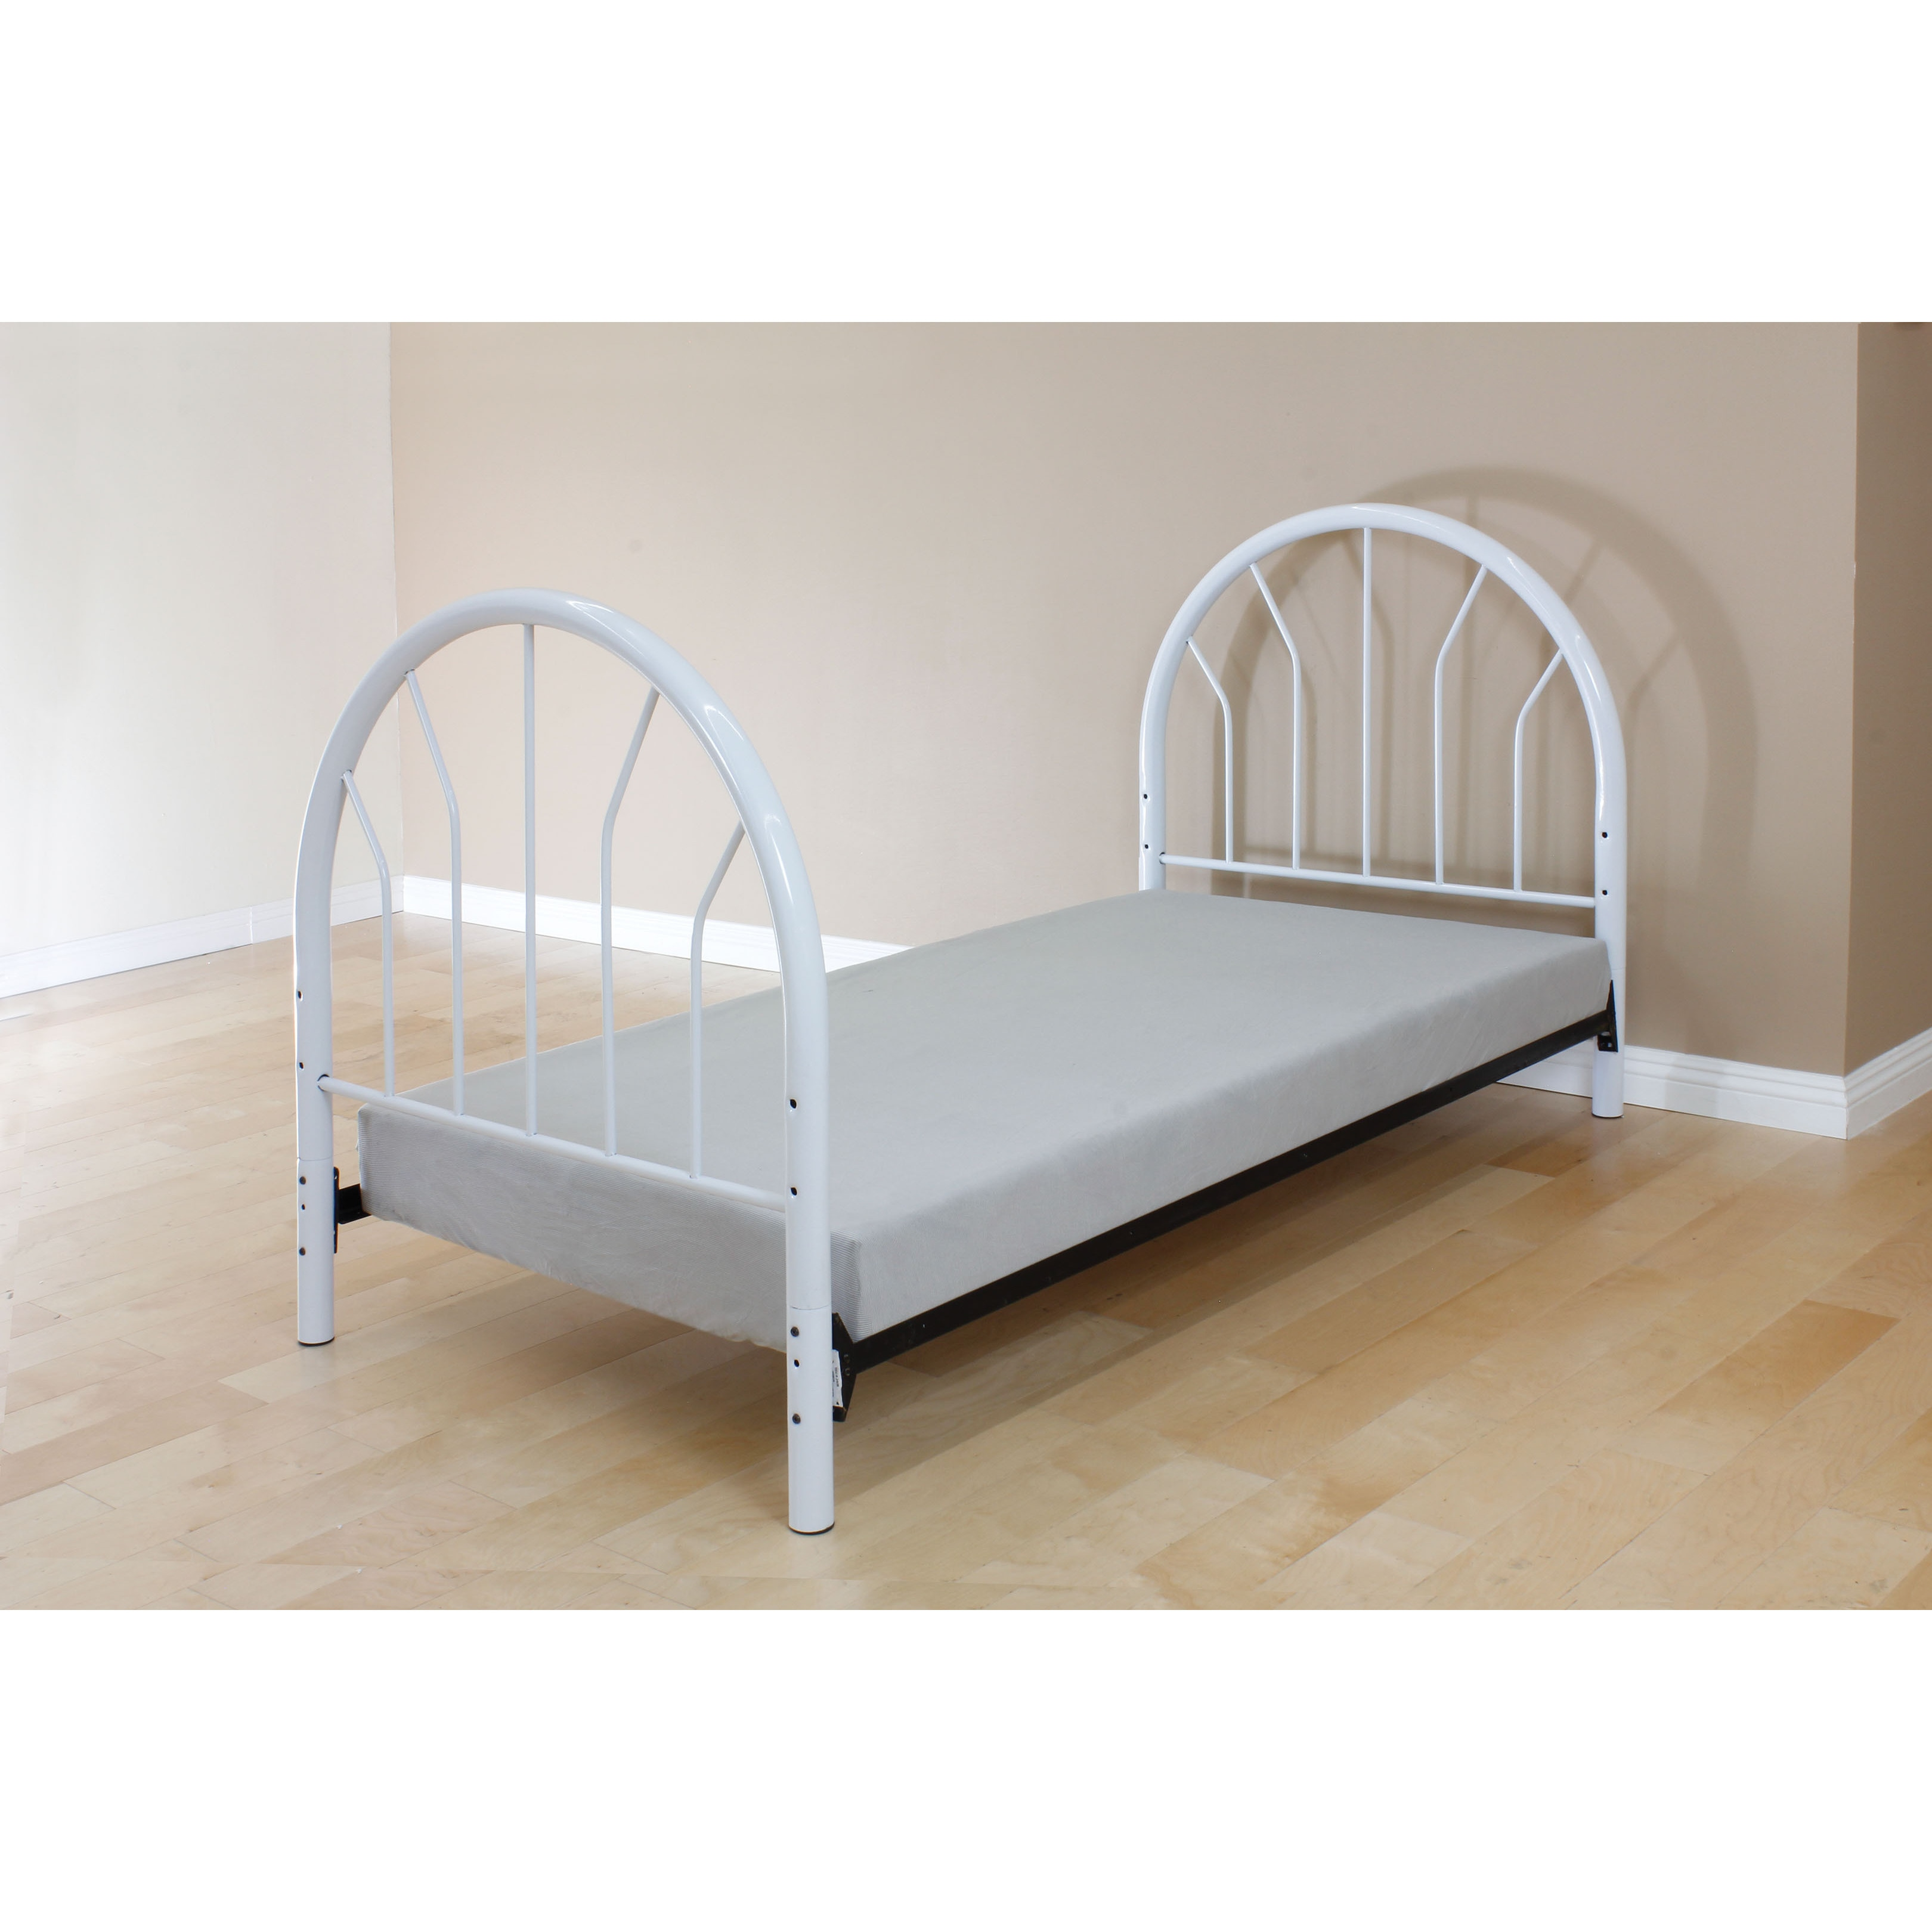 Silhouette White Metal Twin Headboard and Footboard (Whit...